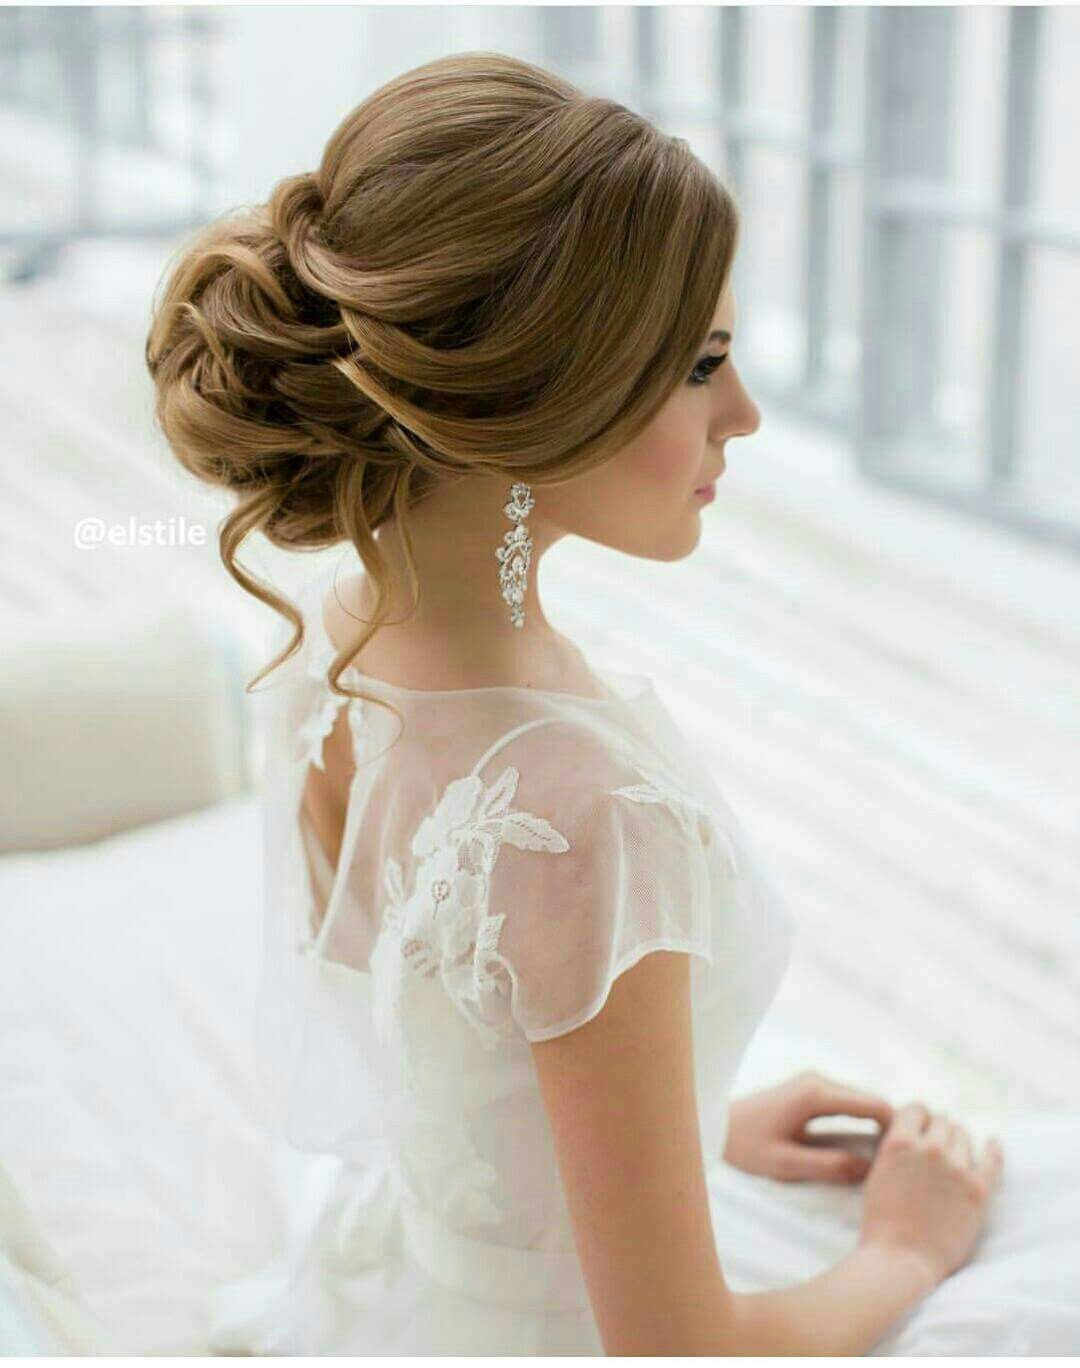 Pin by Eveliz Rivera - Cosme on Wedding Hair | Pinterest | Hair ...